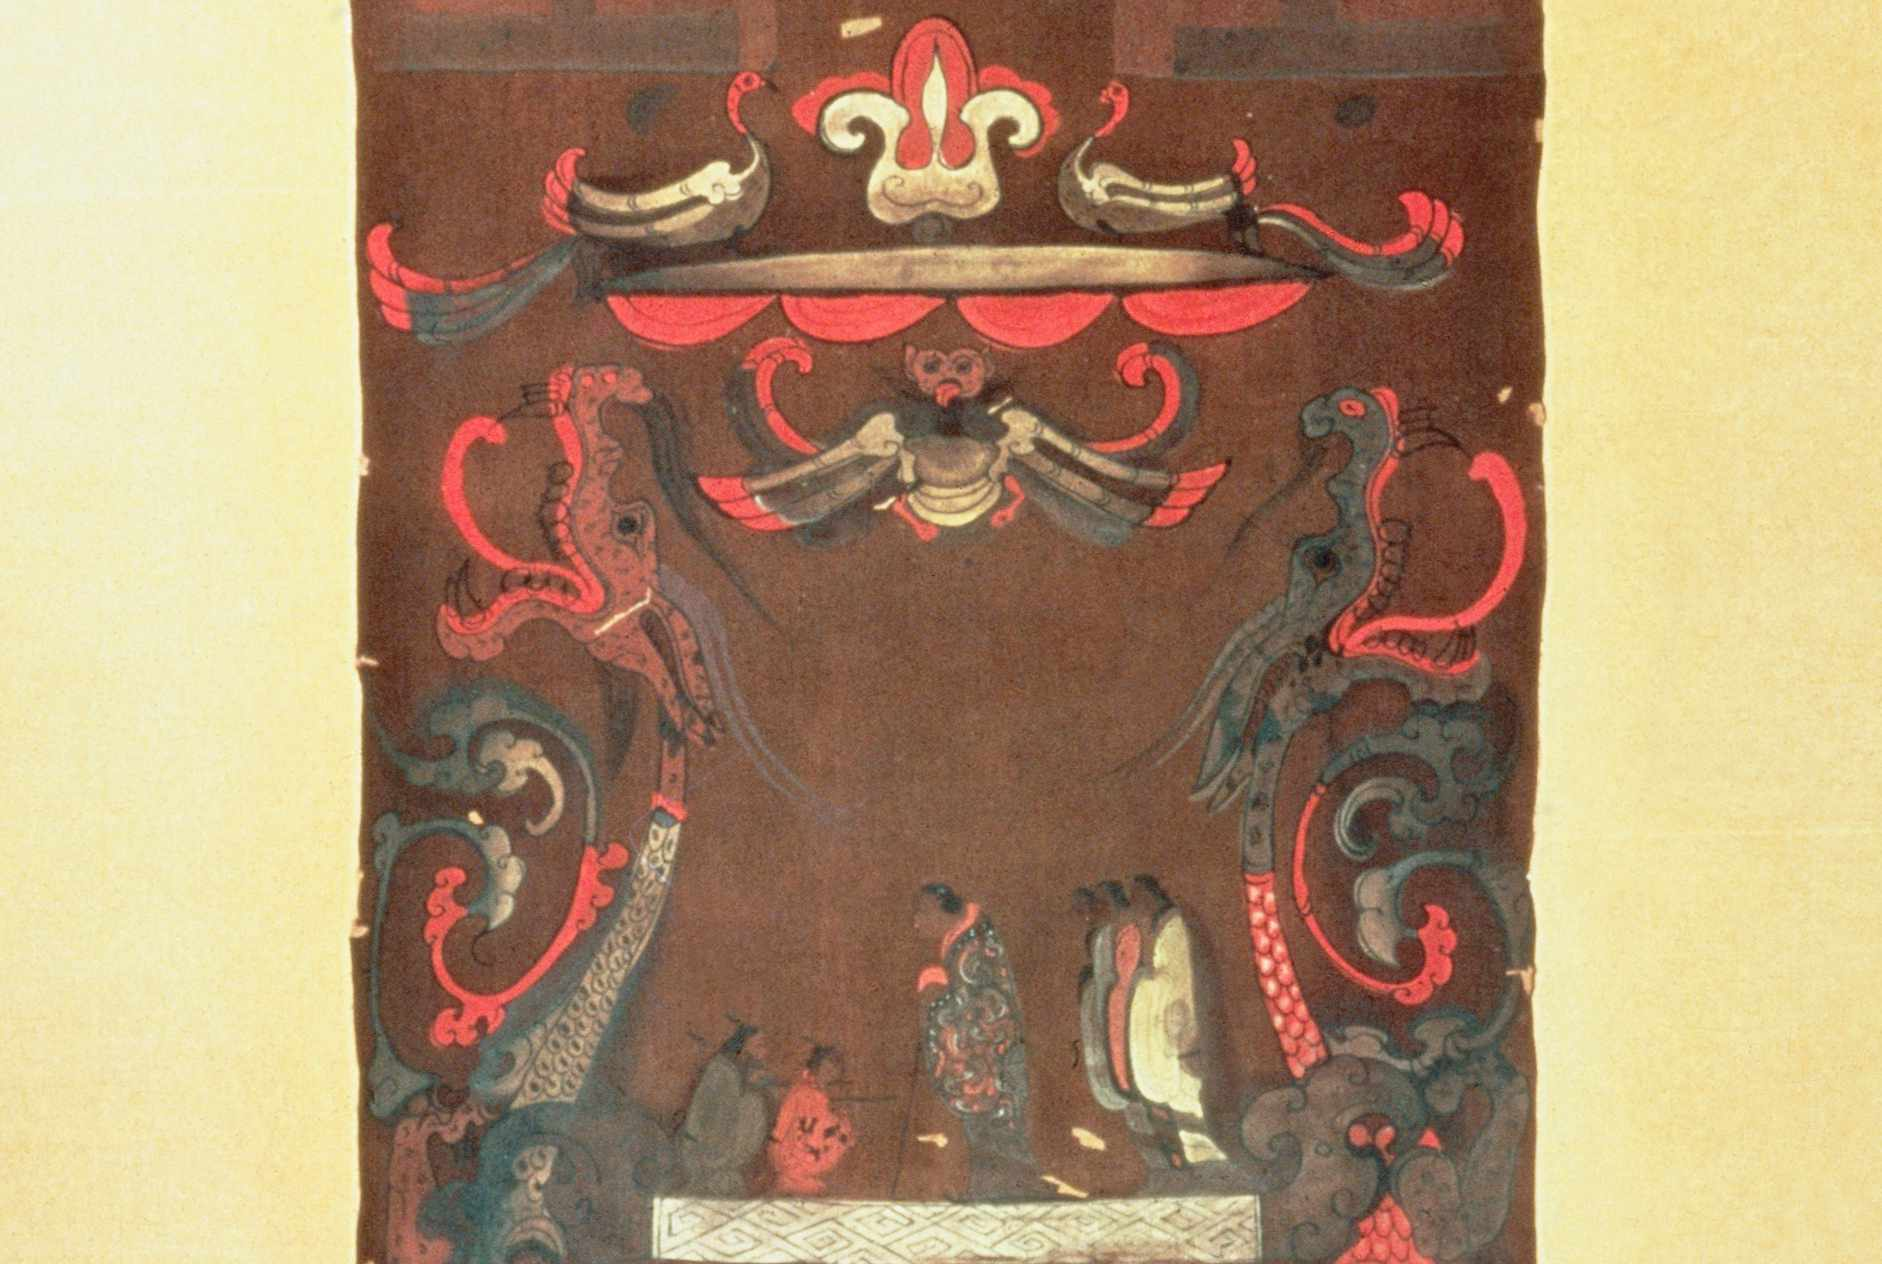 Midsection of Han Dynasty Funeral Banner Showing Deceased Lady Dai from Mawangdui